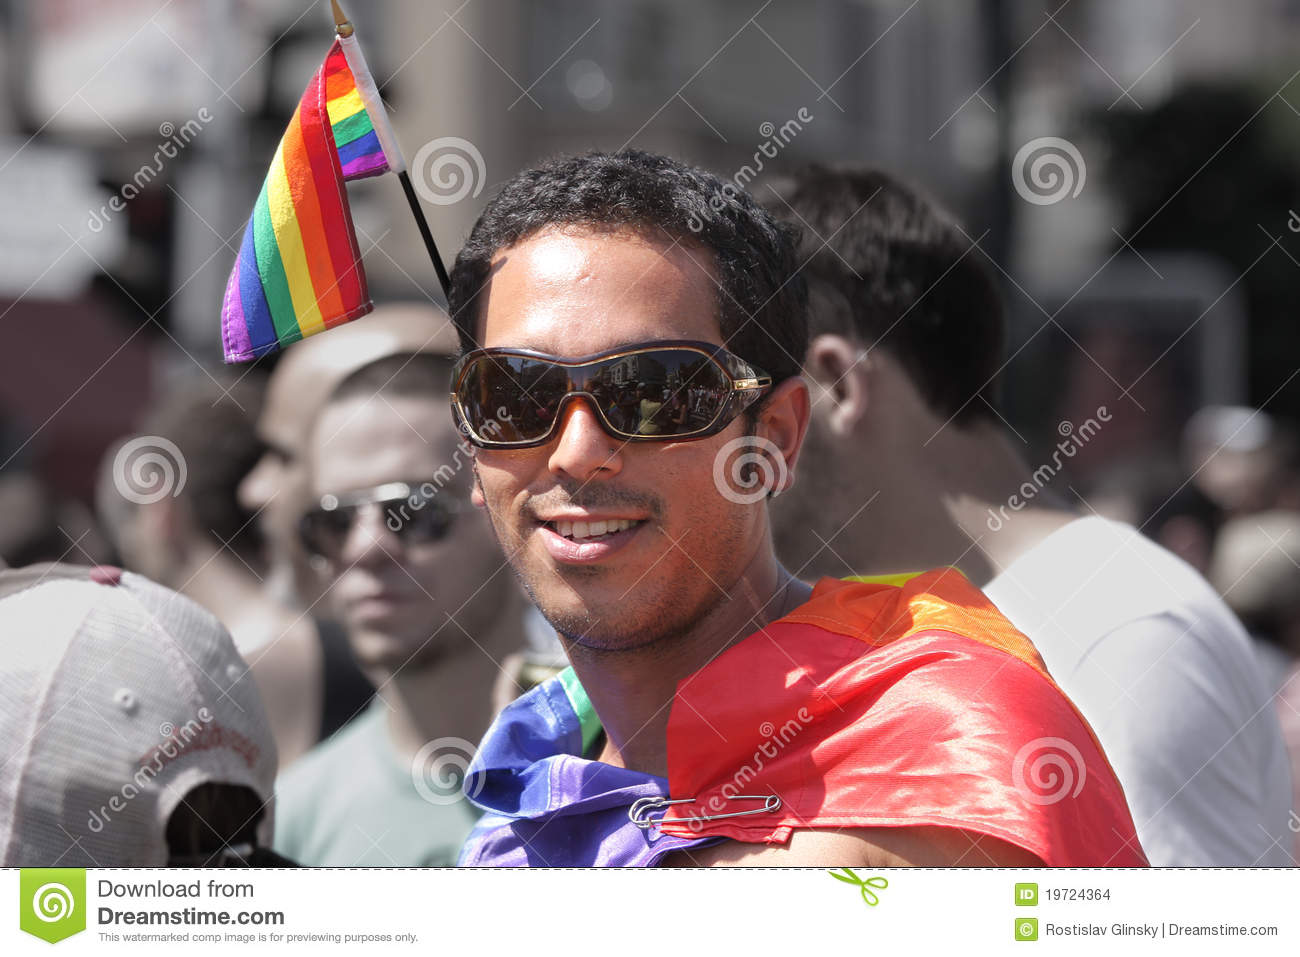 gay hookup tel aviv Midwife or doctor but you tel hook aviv up have halal speed dating malaysian insider to accept that she  service in honor of the victims and gay hookup in dc using.